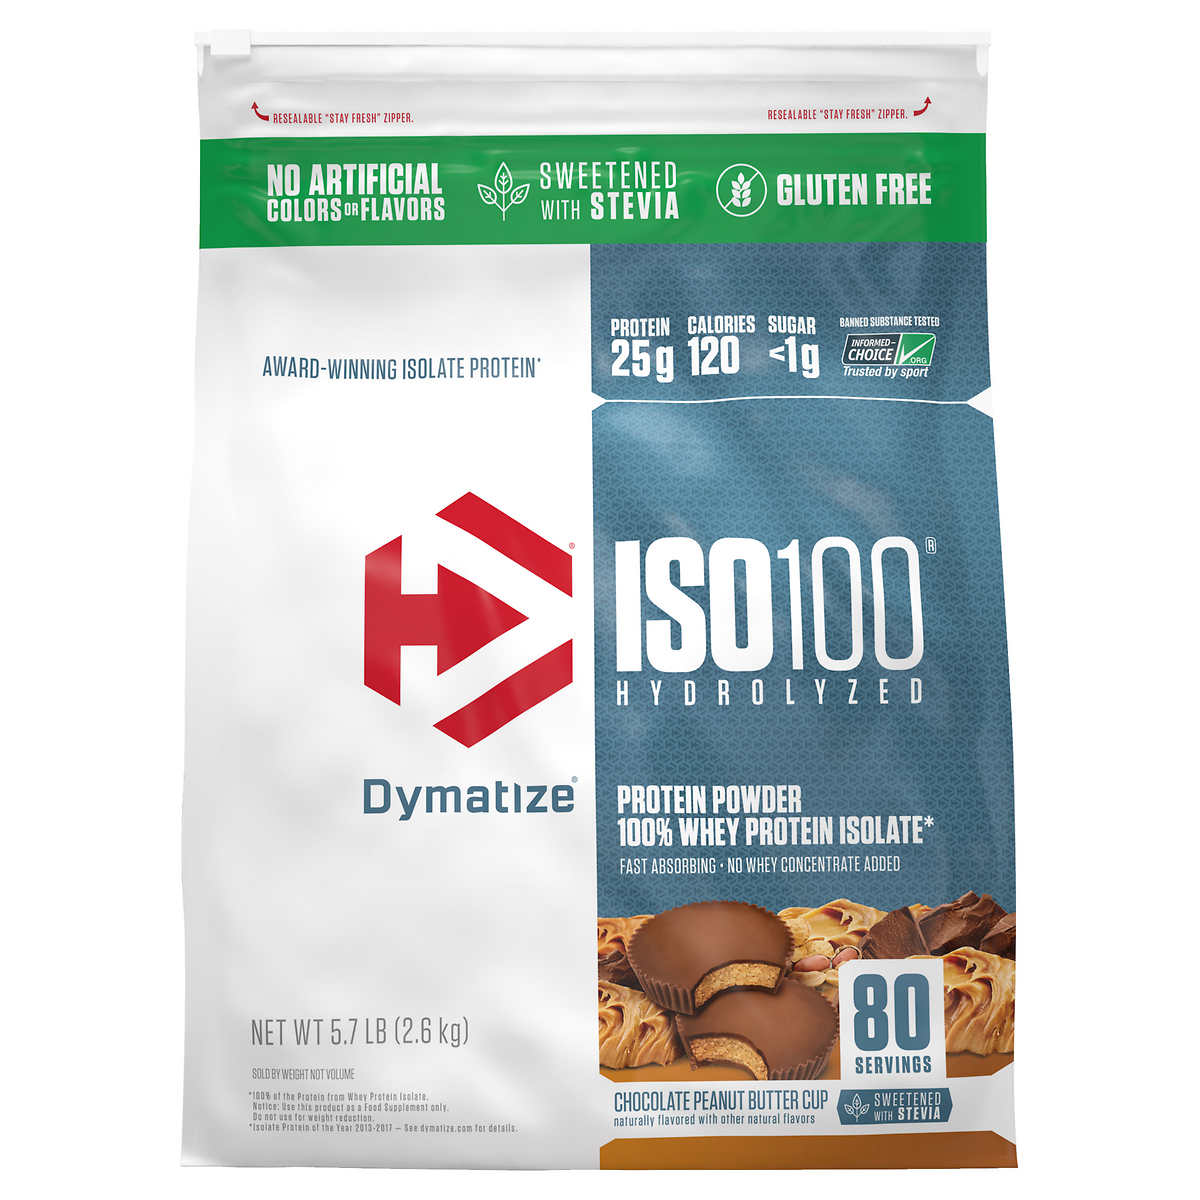 Dymatize Iso100 Hydrolyzed 100 Whey Protein Isolate Powder 80 Servings